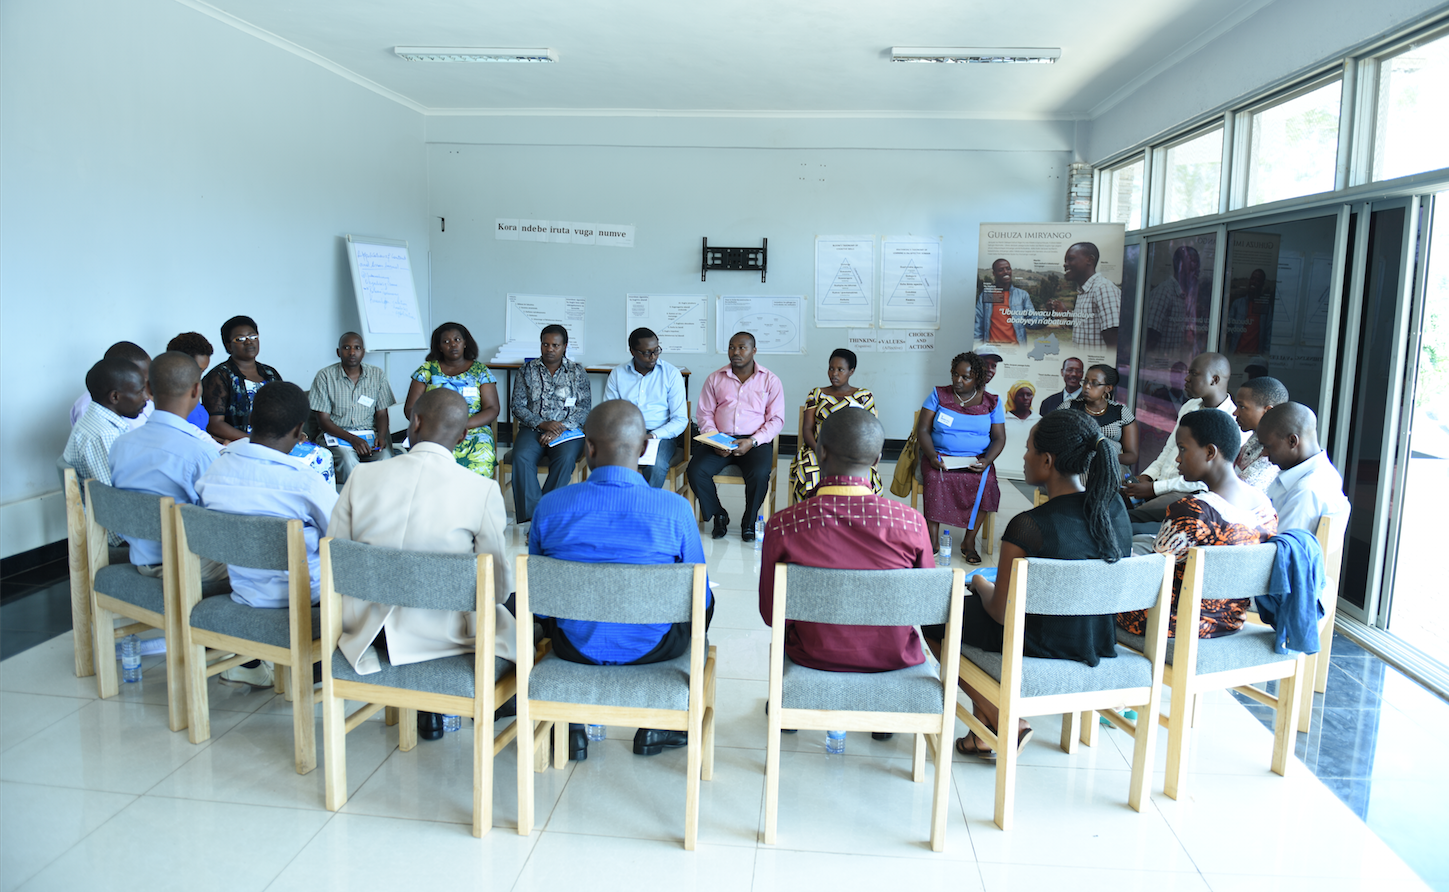 Teachers take part in training at the Kigali Genocide Memorial to help them deliver the peace education components of Rwanda's new school curriculum.